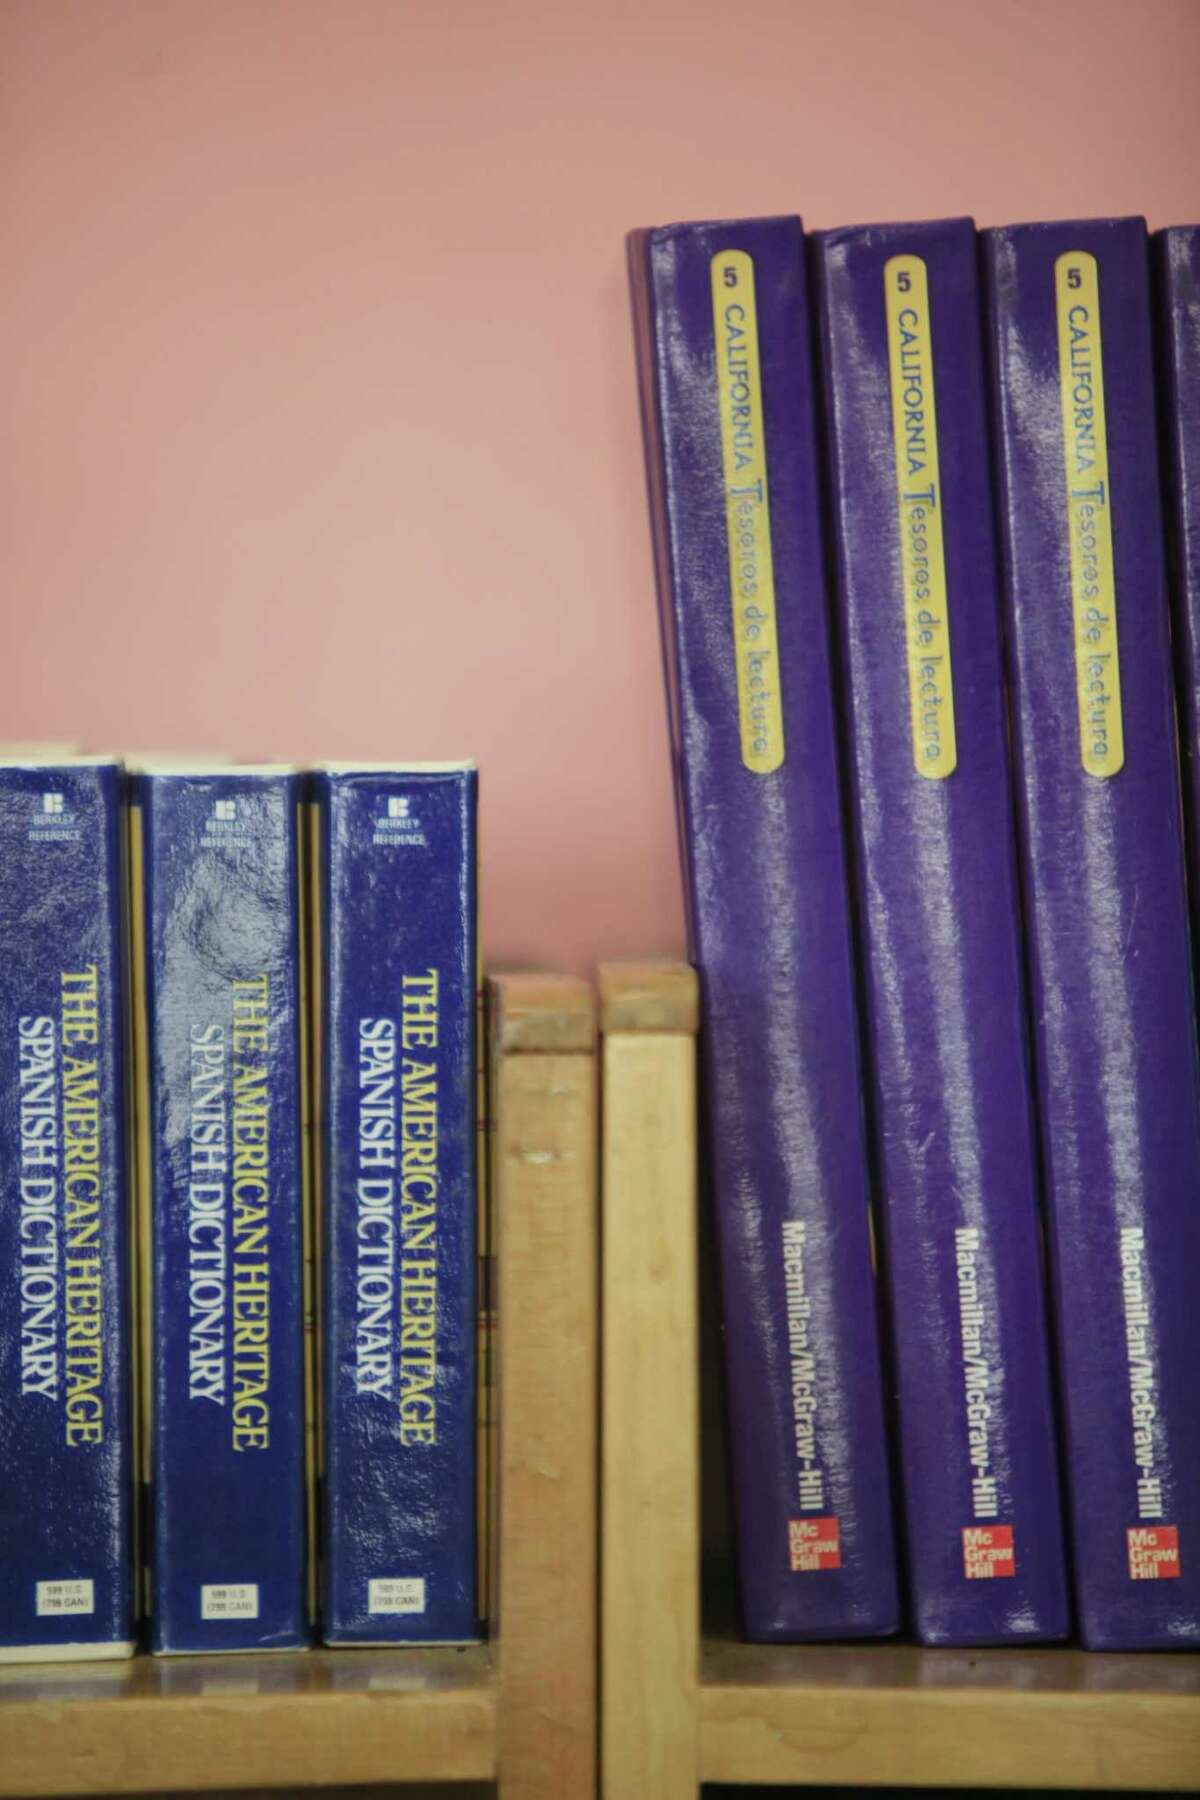 Spanish dictionaries and textbooks in Spanish sit on a shelf in Mission Education Center Elementary School in San Francisco in 2014.